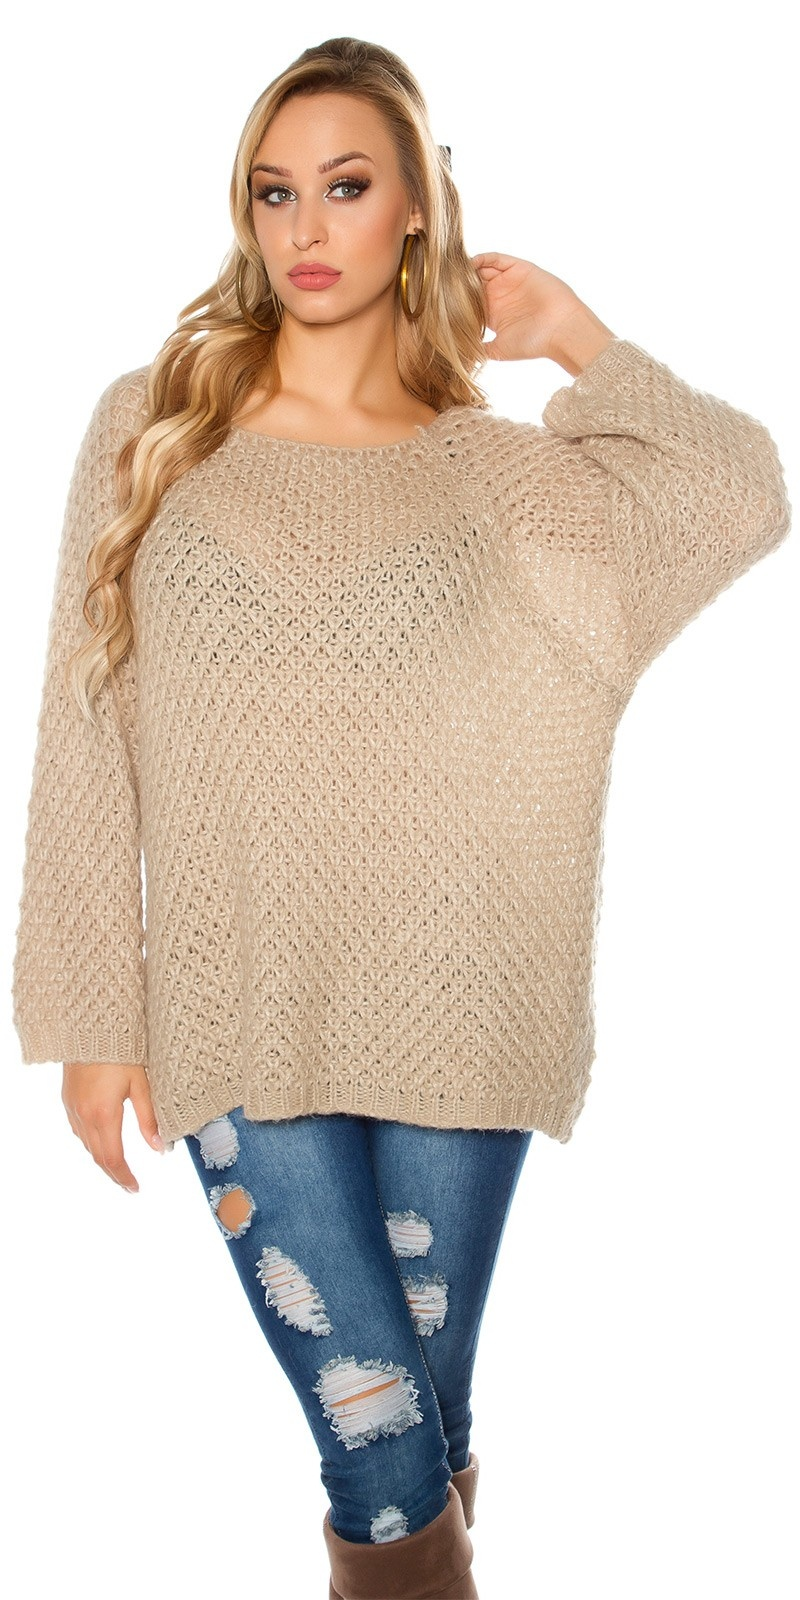 Trendy oversized mohair sweater-trui gehaakte look beige